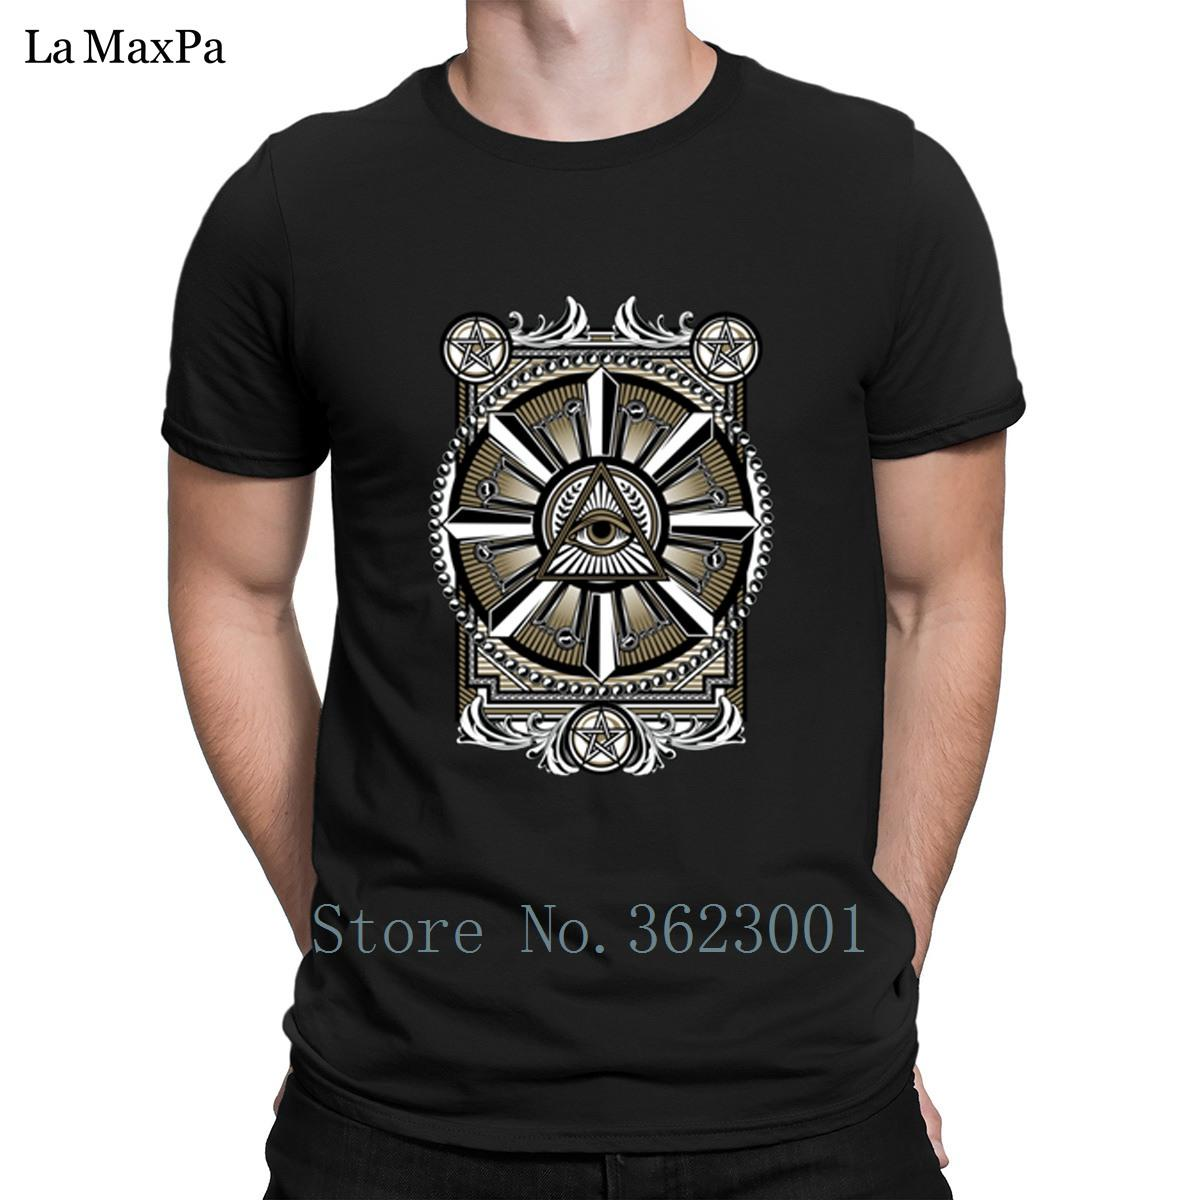 bf39d0b11 Printed Normal T Shirt For Men Summer All Seeing Eye T Shirt Man Better  Slim Fit Tshirt Cotton Tee Shirt Top Quality Tee Shirts For Sale Random T  Shirts ...